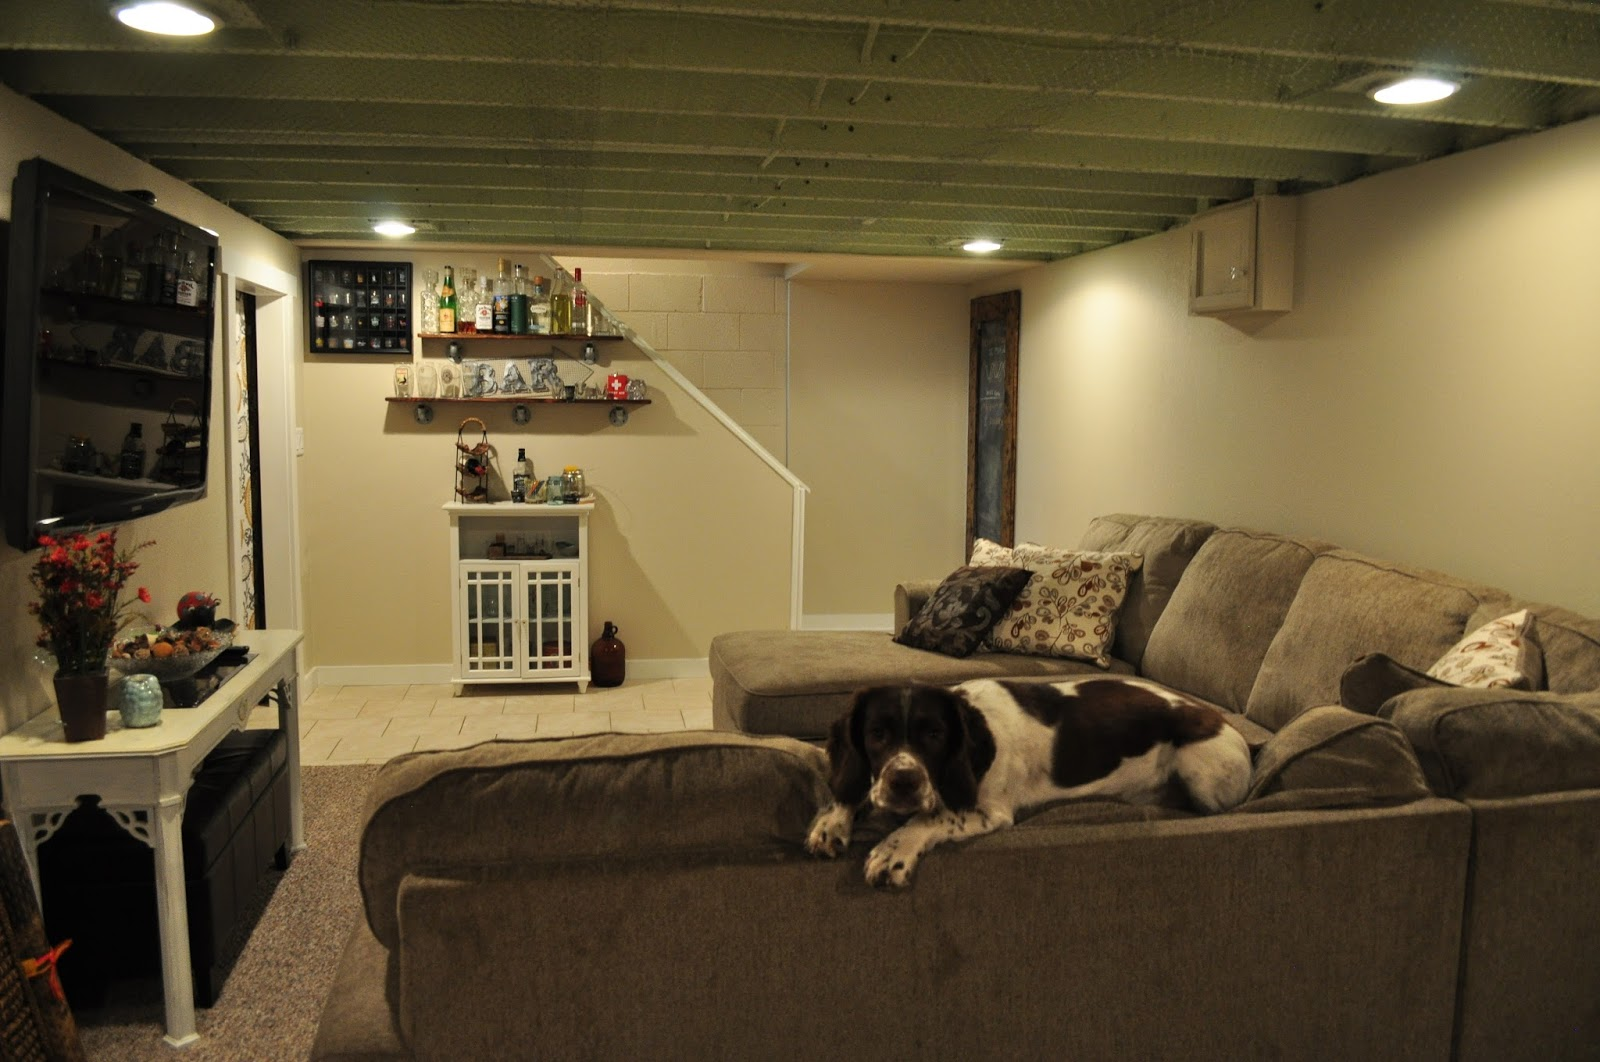 Mae english springer spaniel second house basement decor diy furniture : colders sectionals - Sectionals, Sofas & Couches